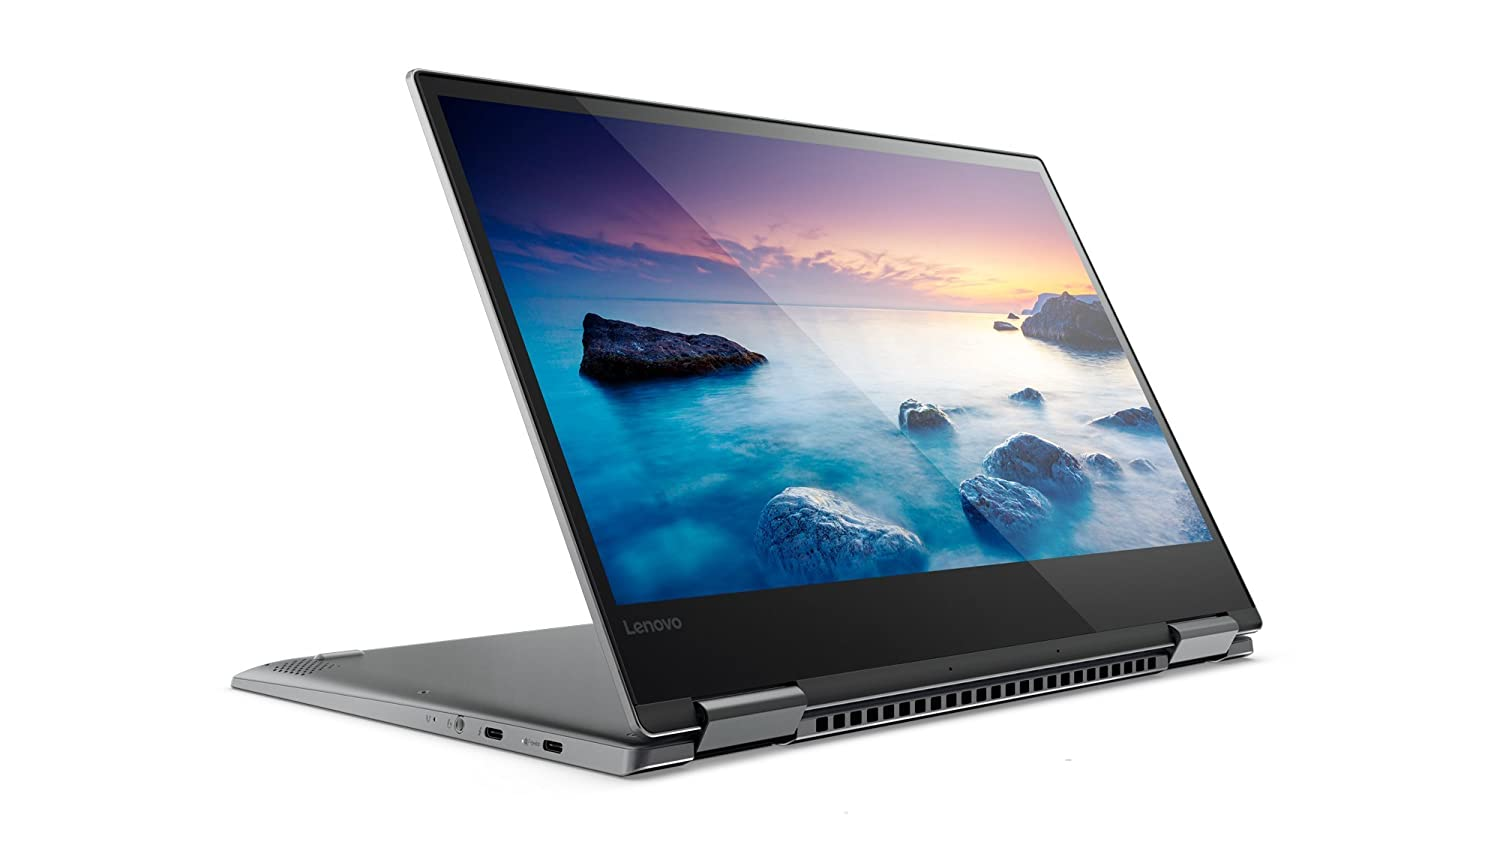 Lenovo Yoga 720 (13,3 FDH TS) Slim portátil Convertible (Intel Core i7 - 7500u, 16 GB de RAM, 512 GB SSD, Intel HD Gráficos 620, Windows 10 Home) gris 512 ...